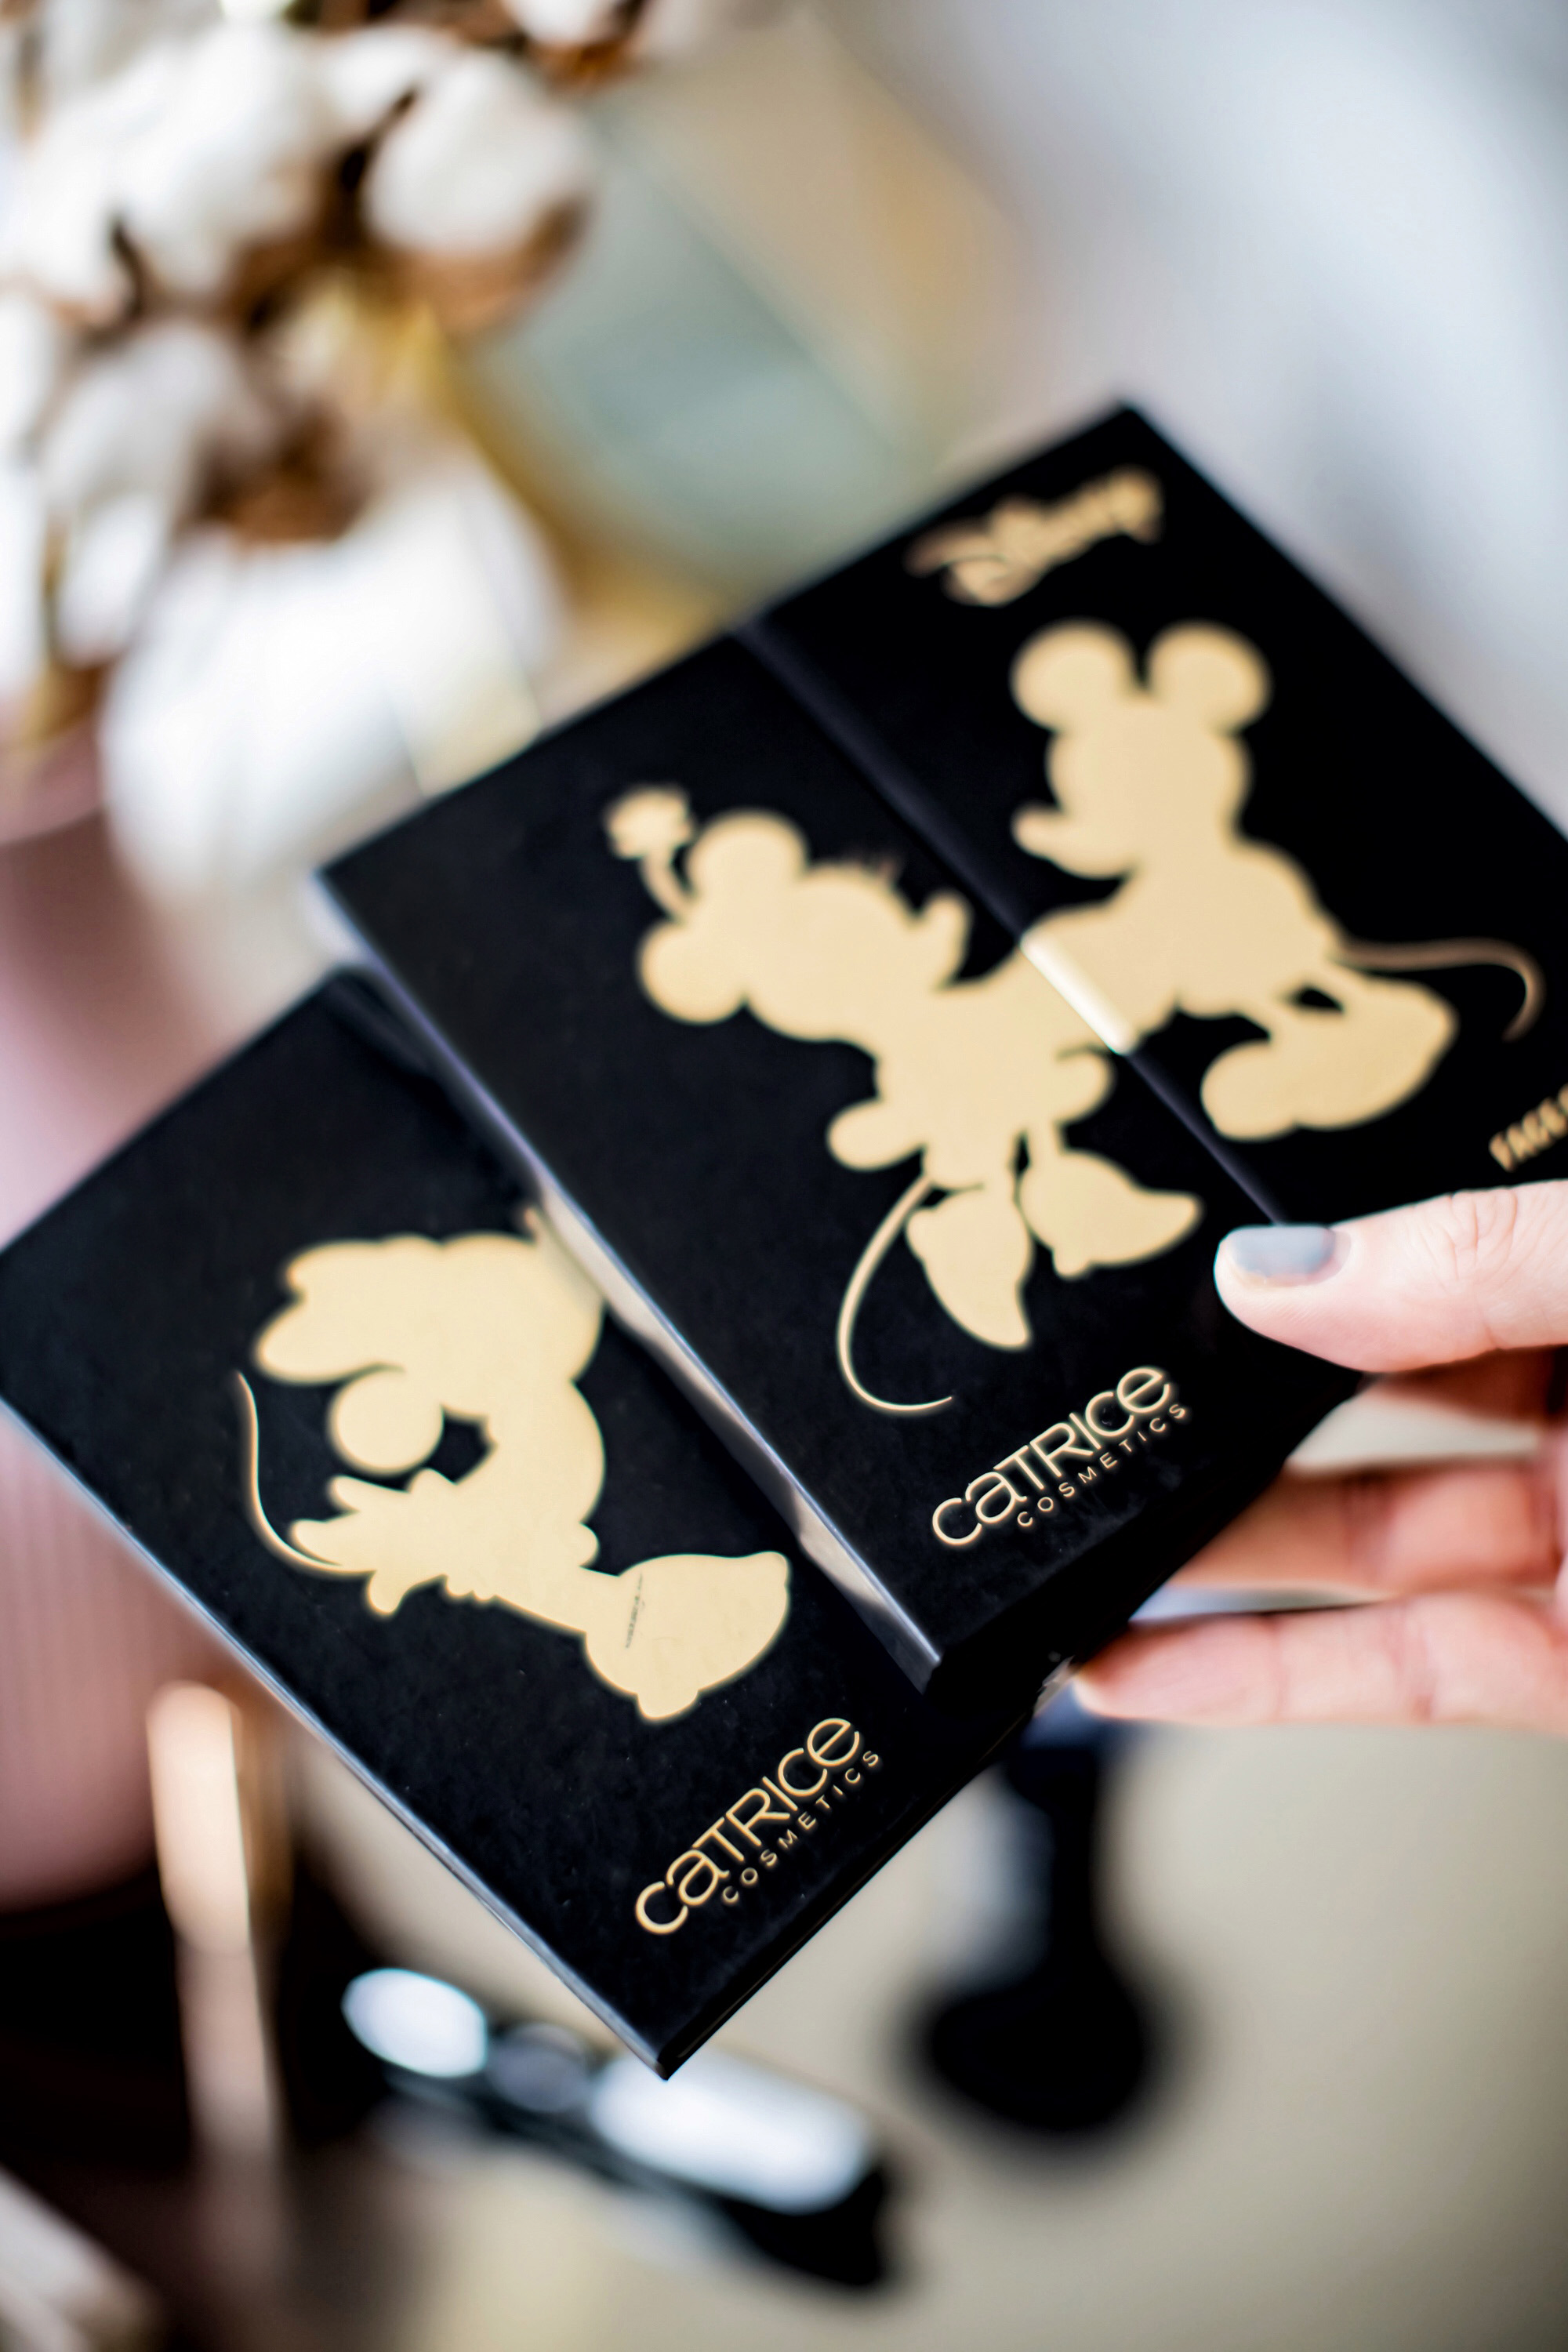 All eyes on : Die Catrice Mickey's 90th Anniversary Limited Edition